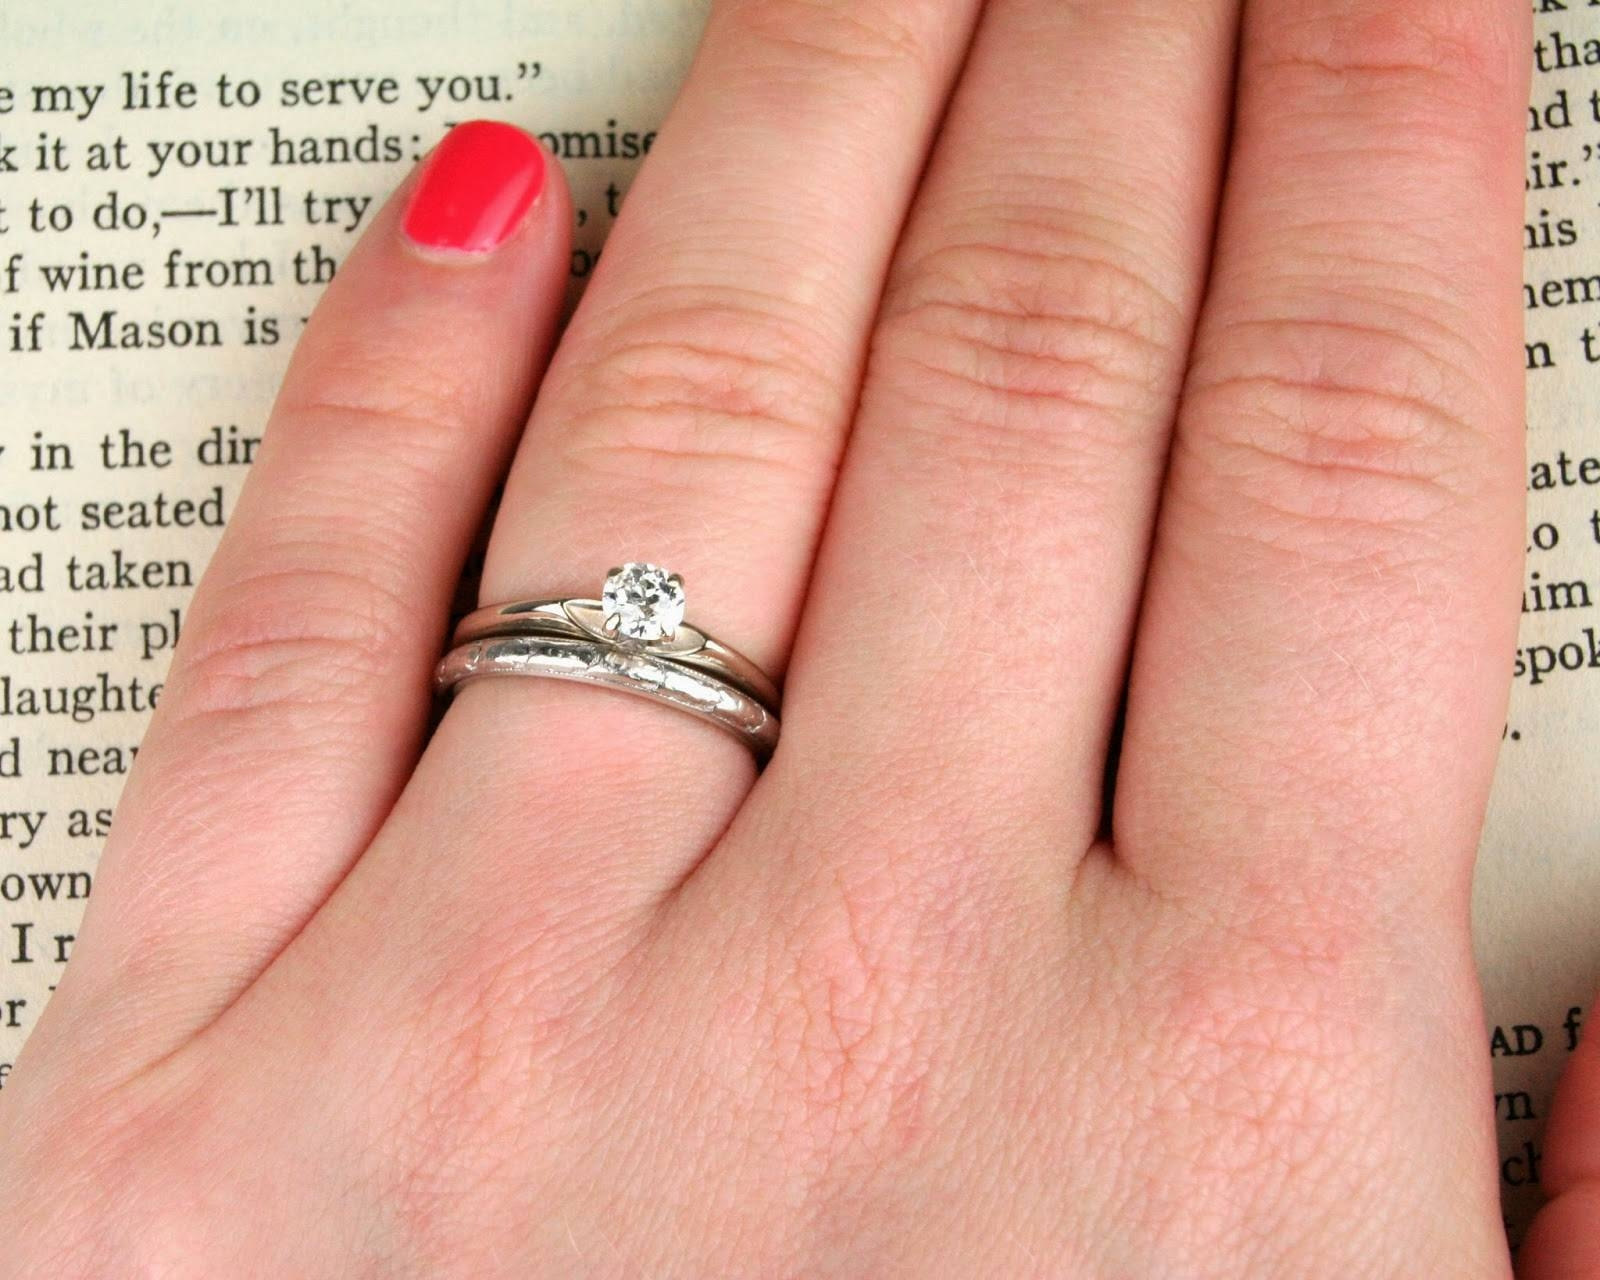 Wedding Rings : Wedding Bands To Match Engagement Ring Wedding Inside Wedding Bands And Engagement Rings (View 11 of 15)